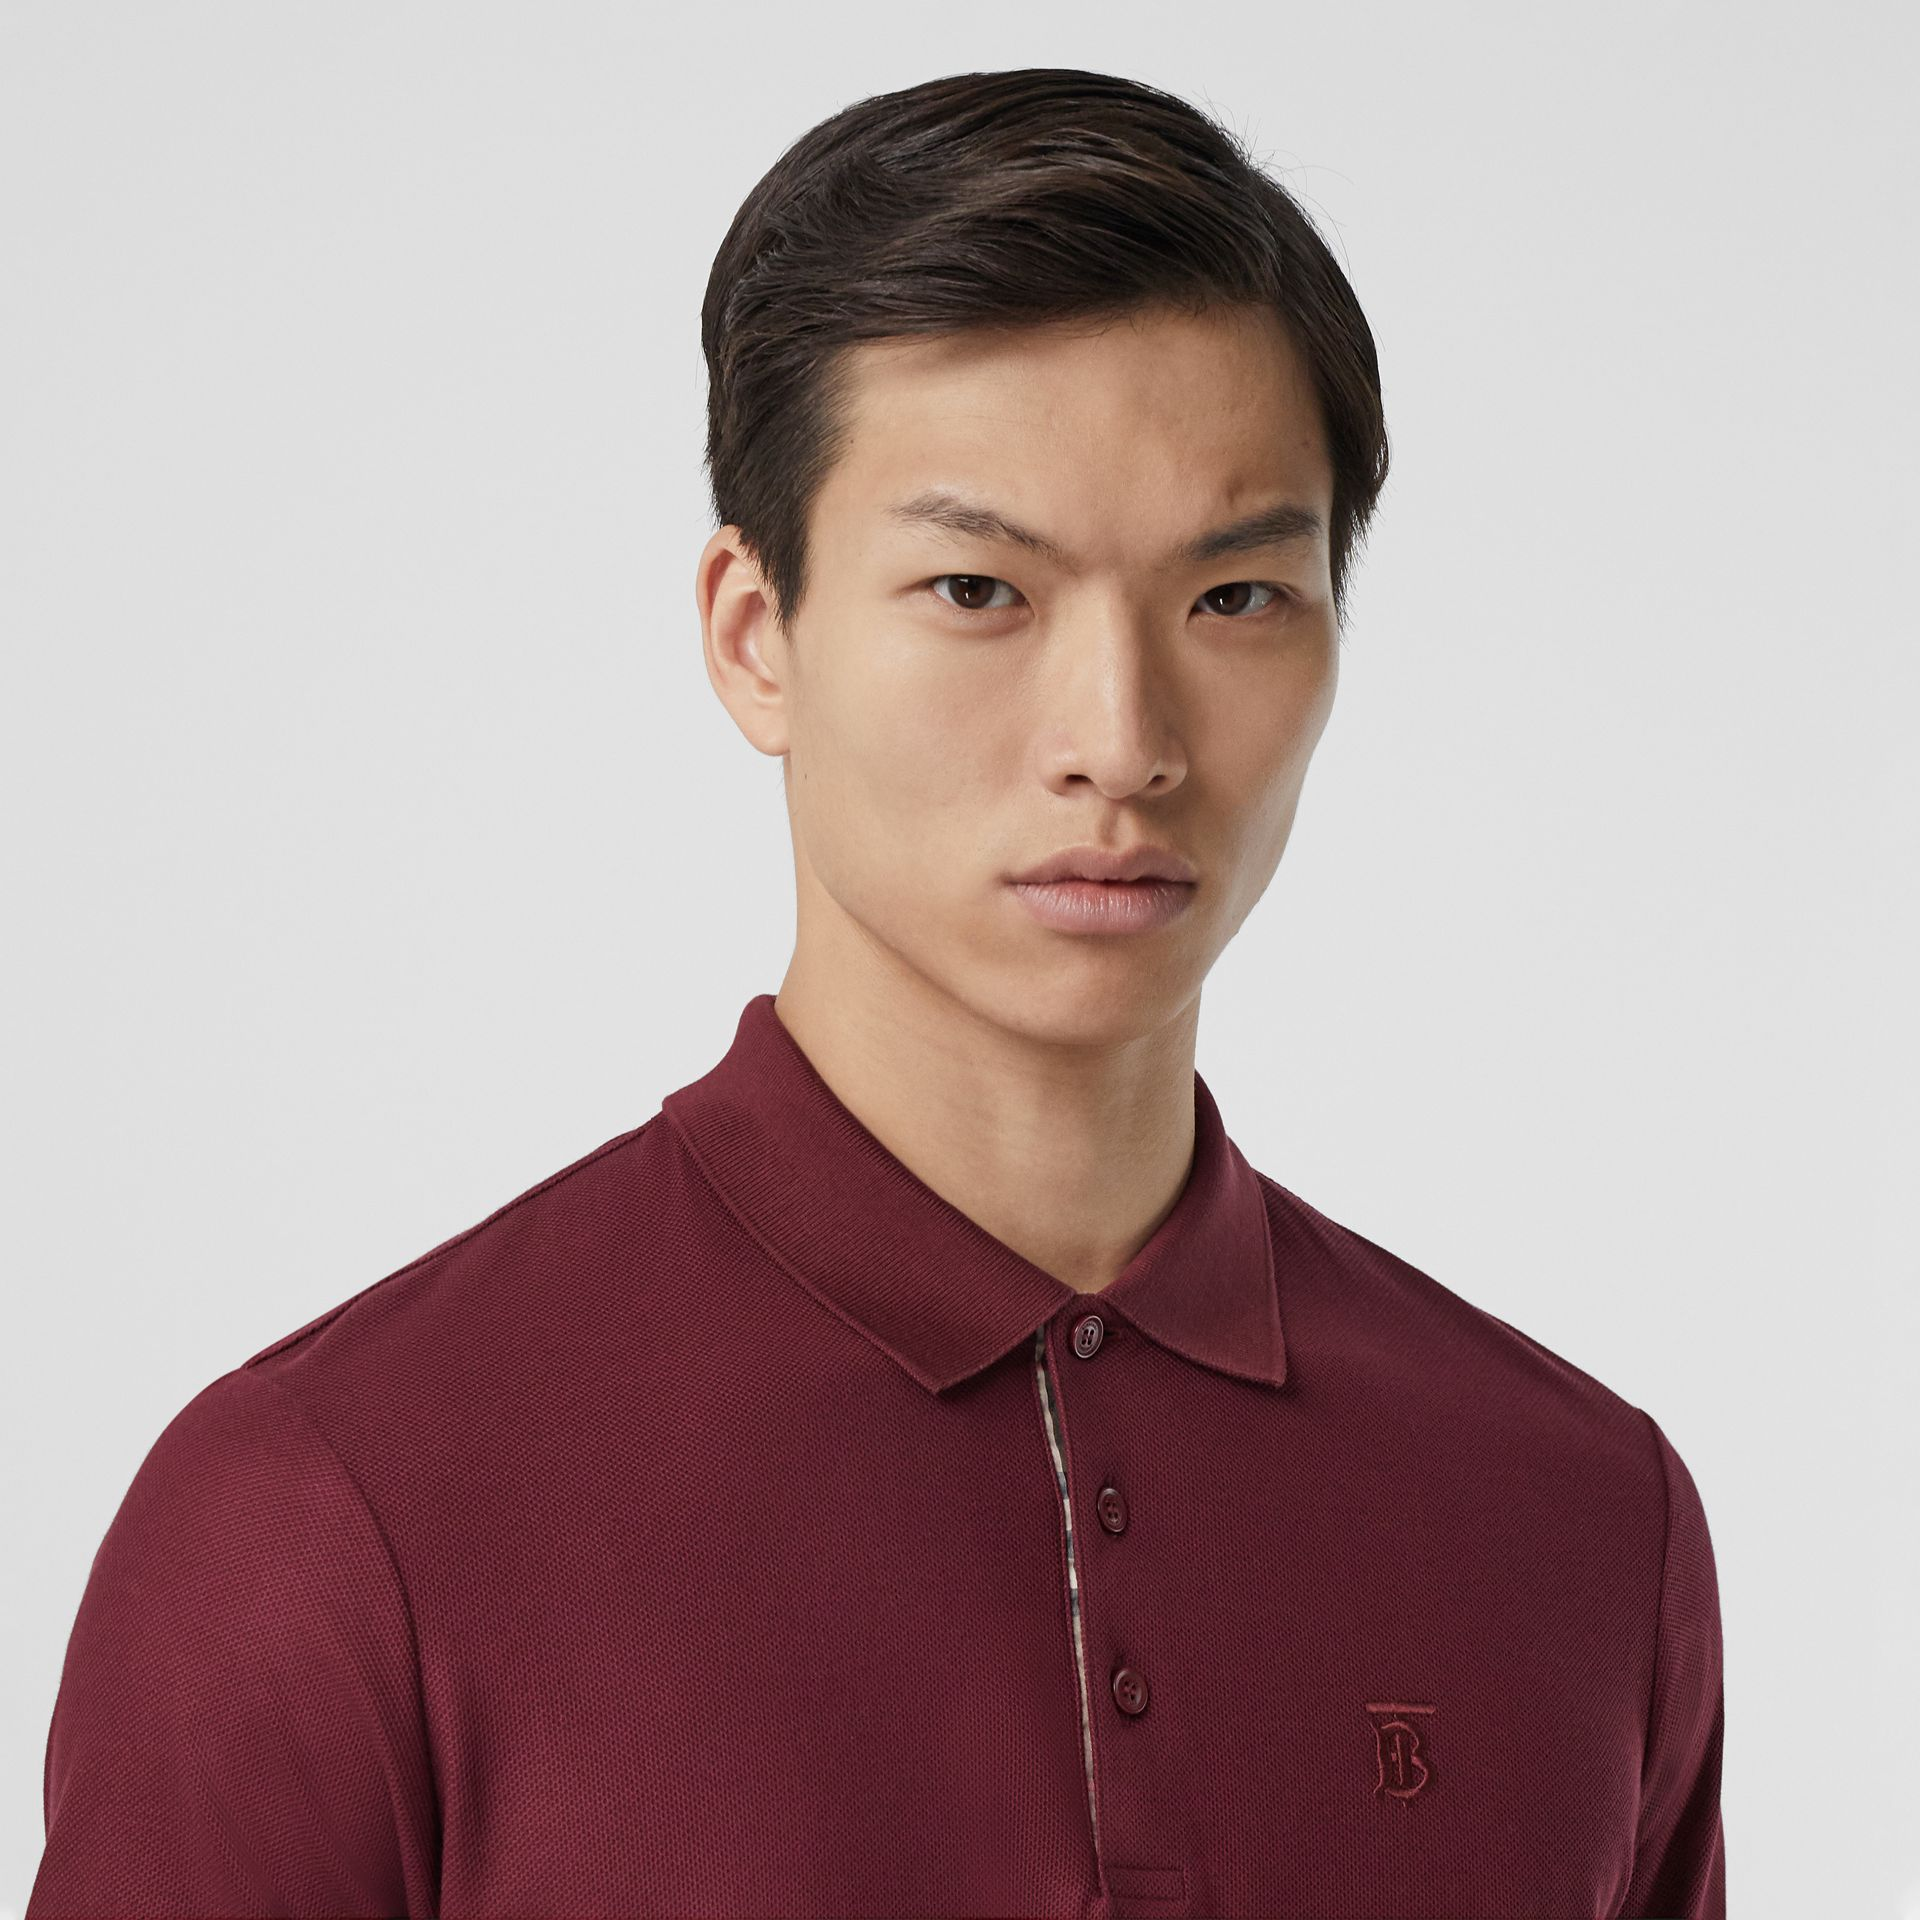 Monogram Motif Cotton Piqué Polo Shirt in Garnet - Men | Burberry - gallery image 1